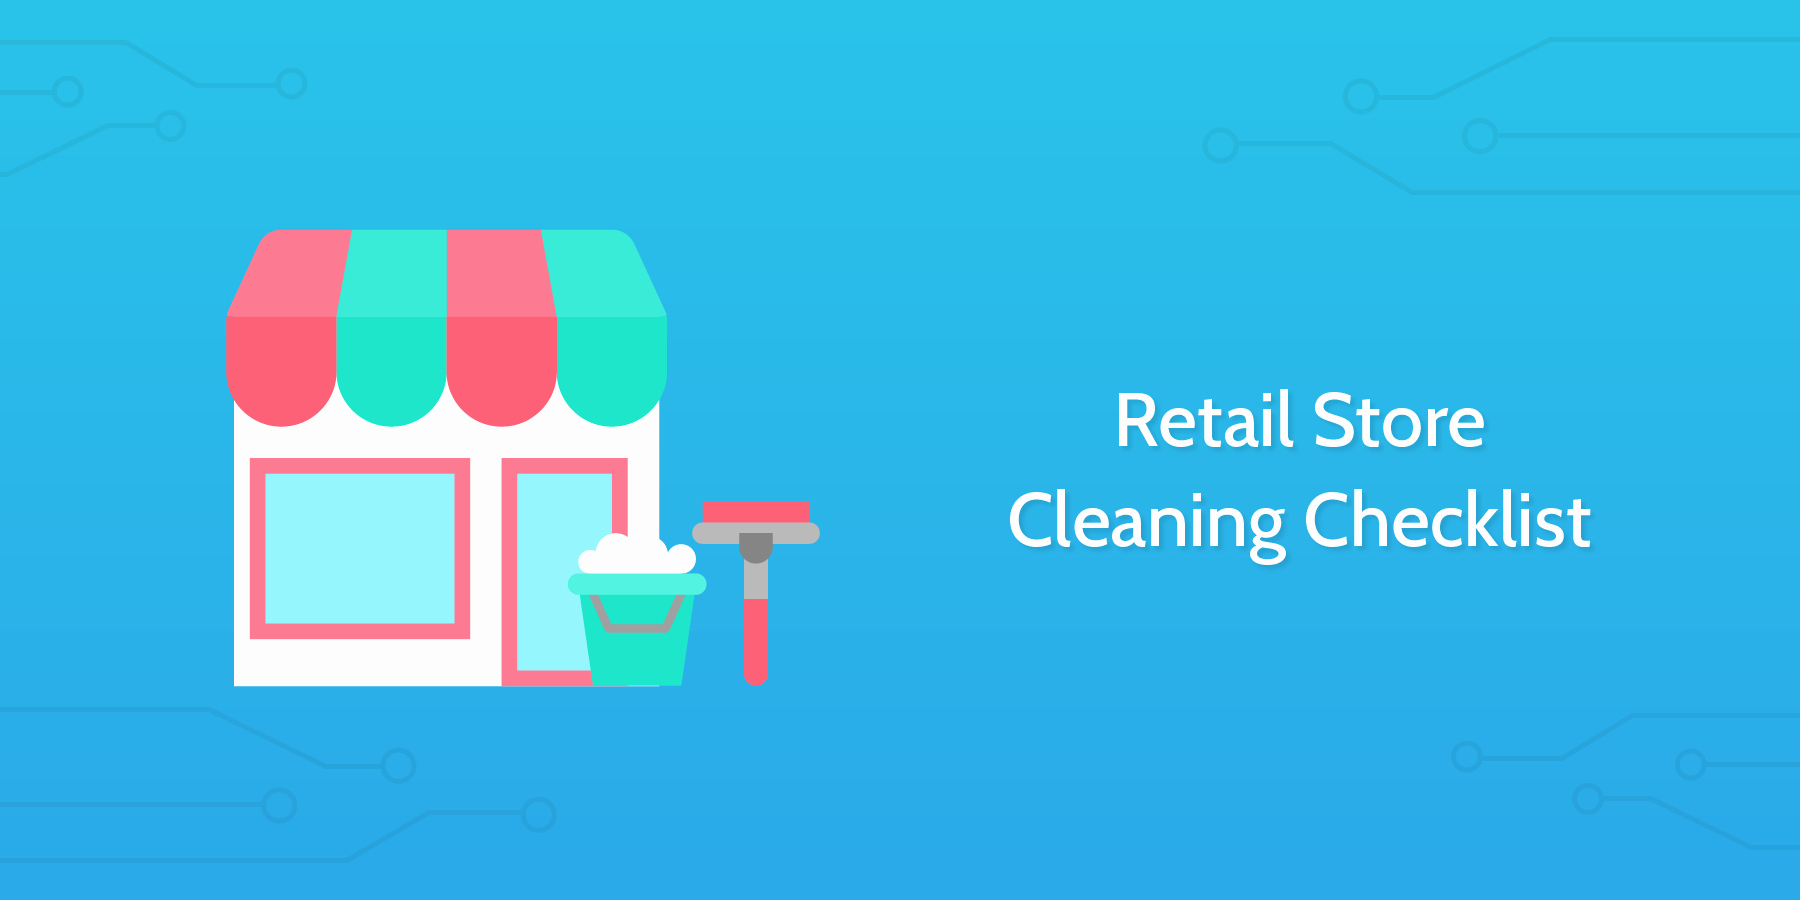 Retail Store Cleaning Checklist Unique 6 Retail Process Checklists to Slash Running Costs